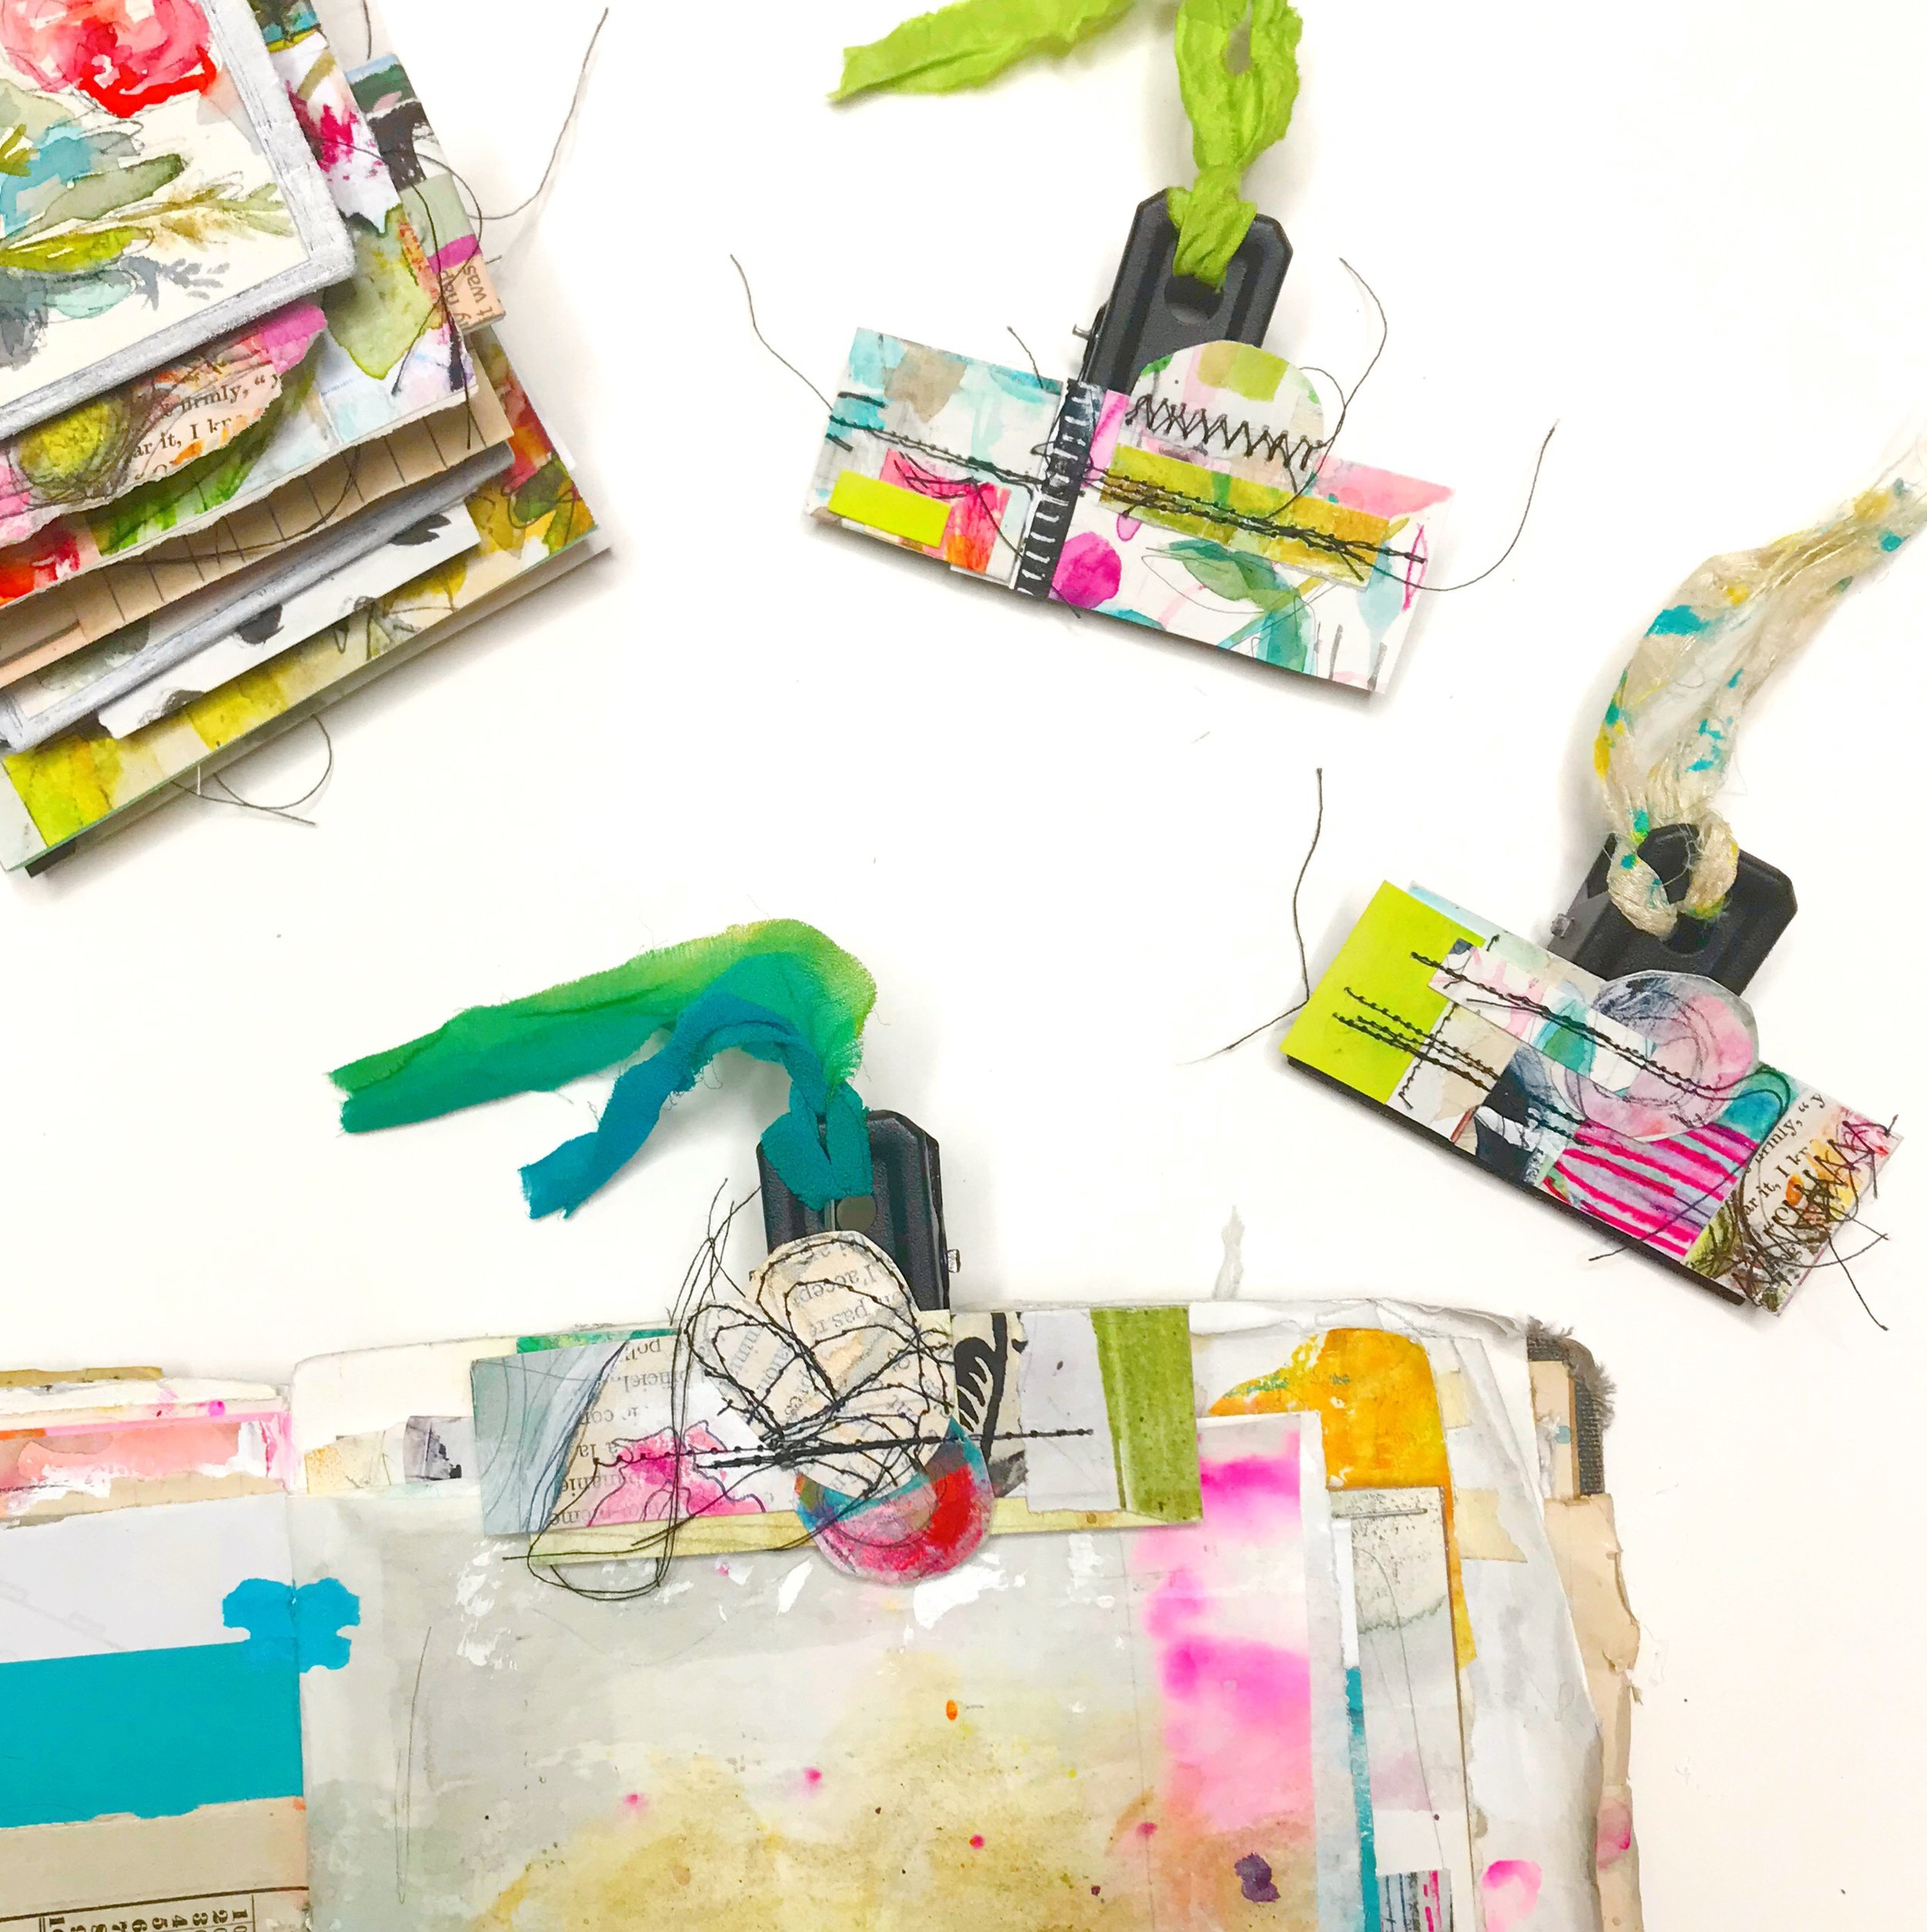 Mixed media art tutorial by Roben-Marie Smith. DIY handmade, custom collaged and stitched paper bits to create these unique binder clips. A unique art journaling accessory and perfect gift idea. #robenmariesmith #artbits #artaccessory #mixedmediatutorial